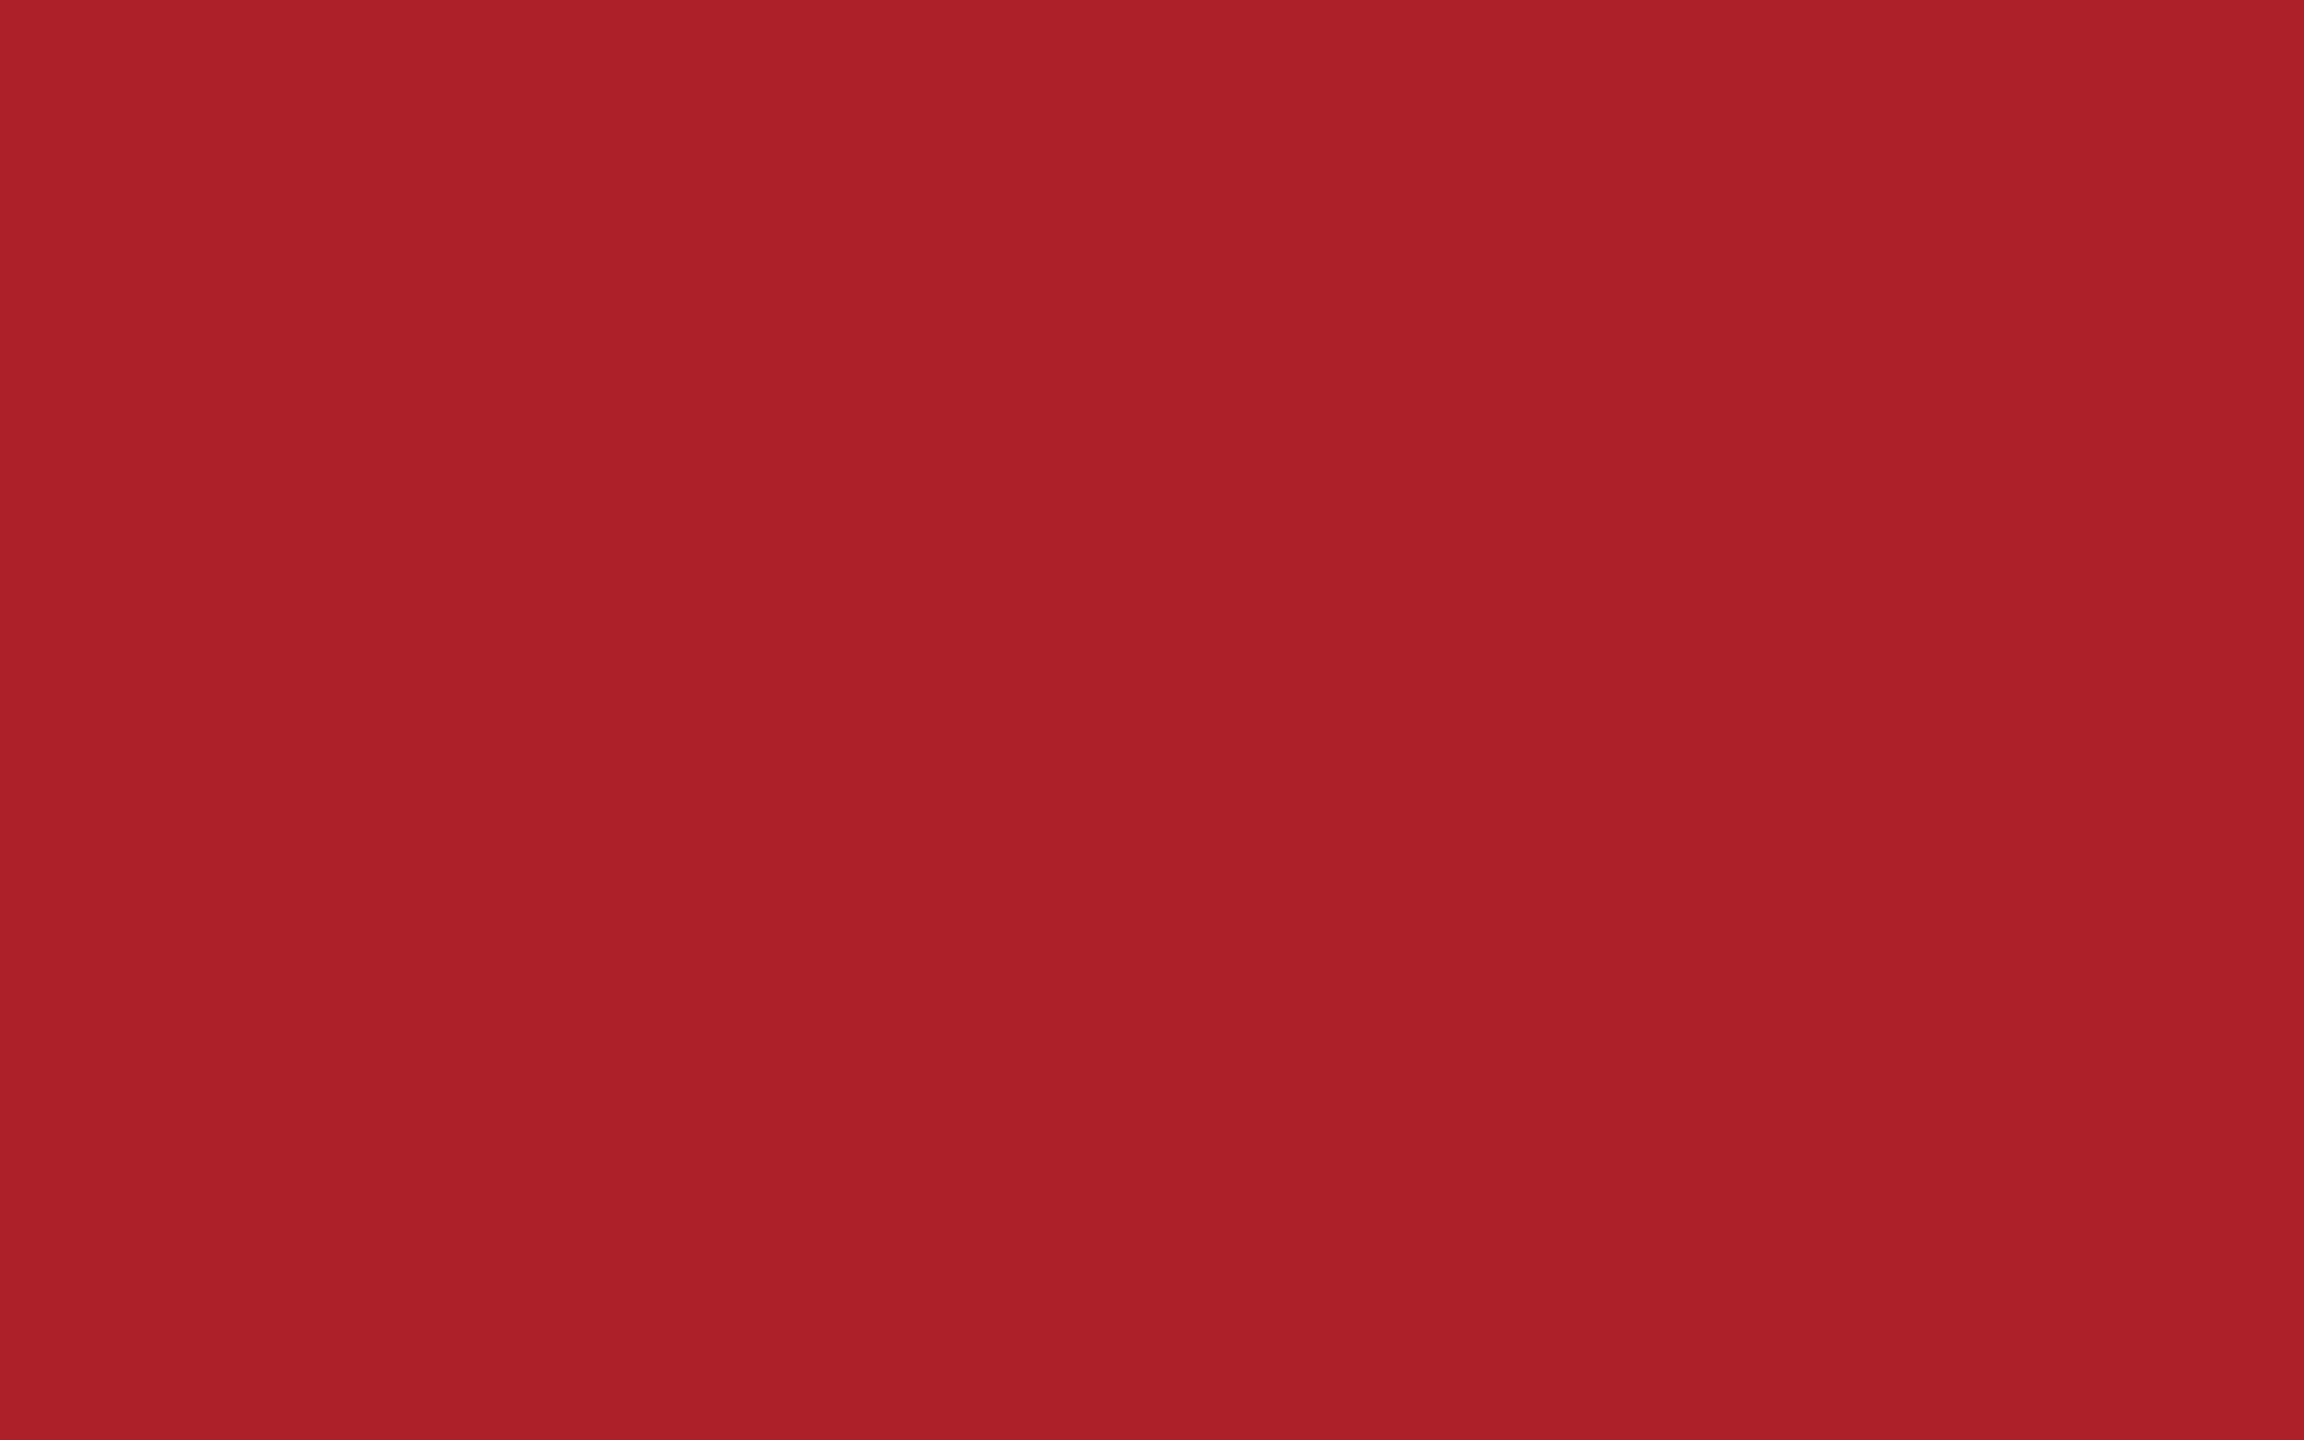 2304x1440 Upsdell Red Solid Color Background